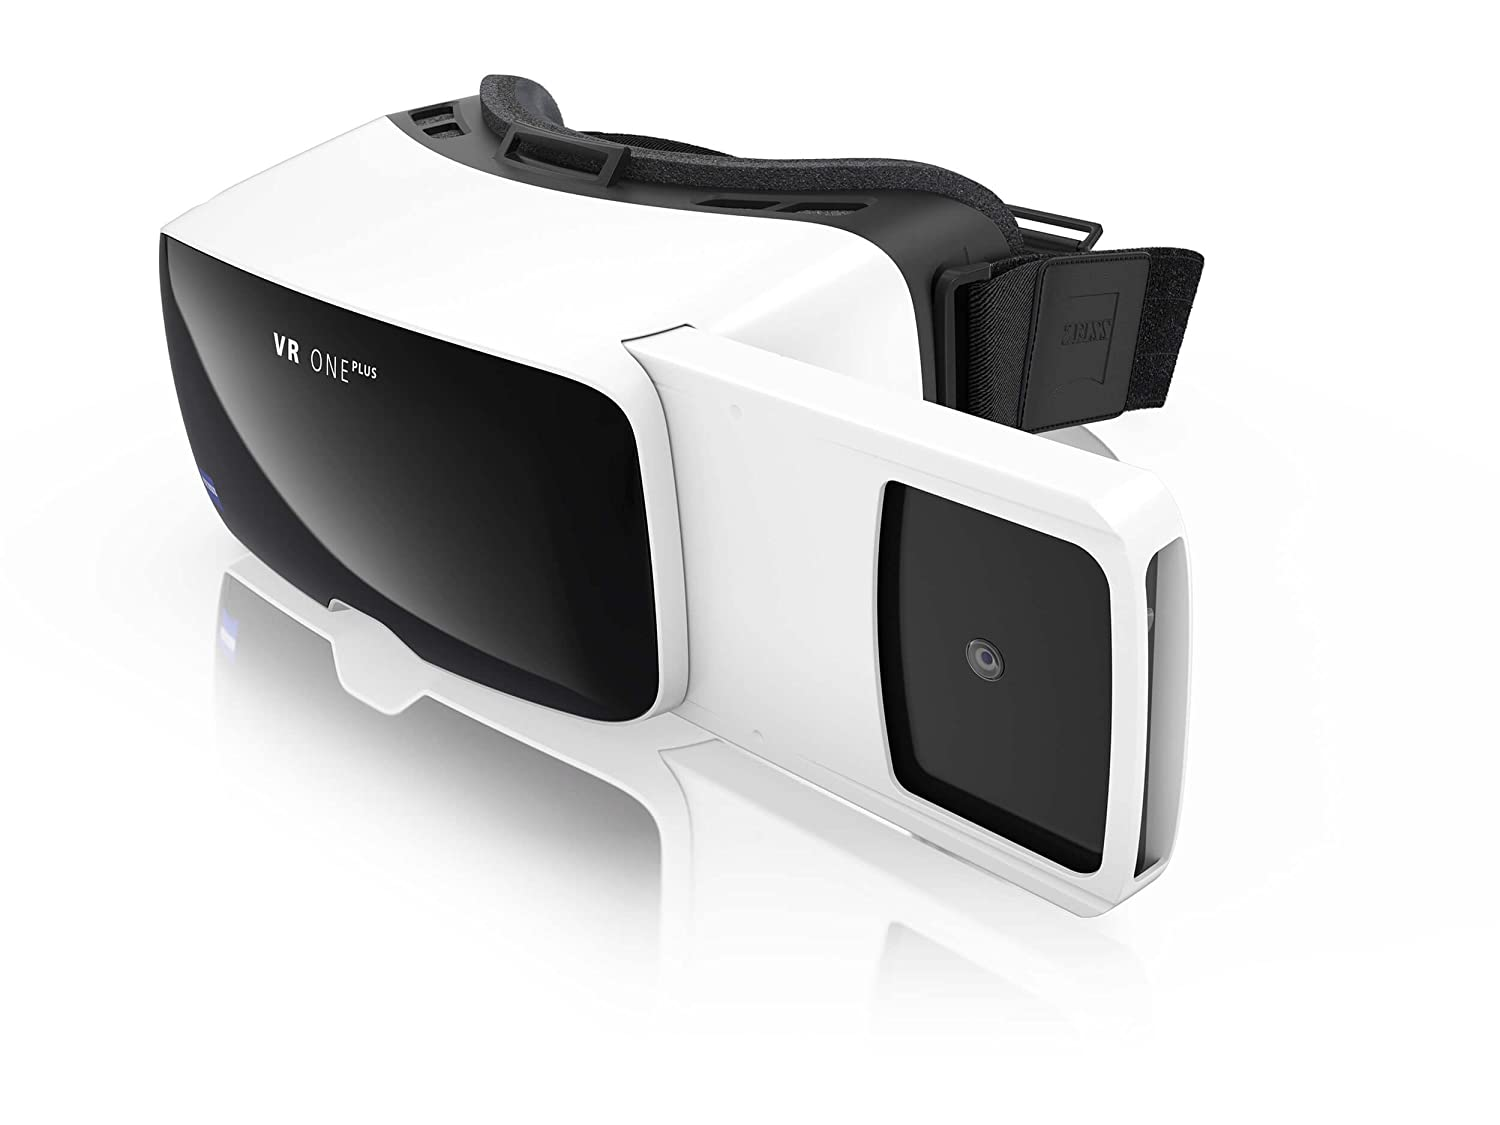 Beste Vr Brille Grafik : Zeiss vr one plus virtual reality brille für: amazon.de: kamera